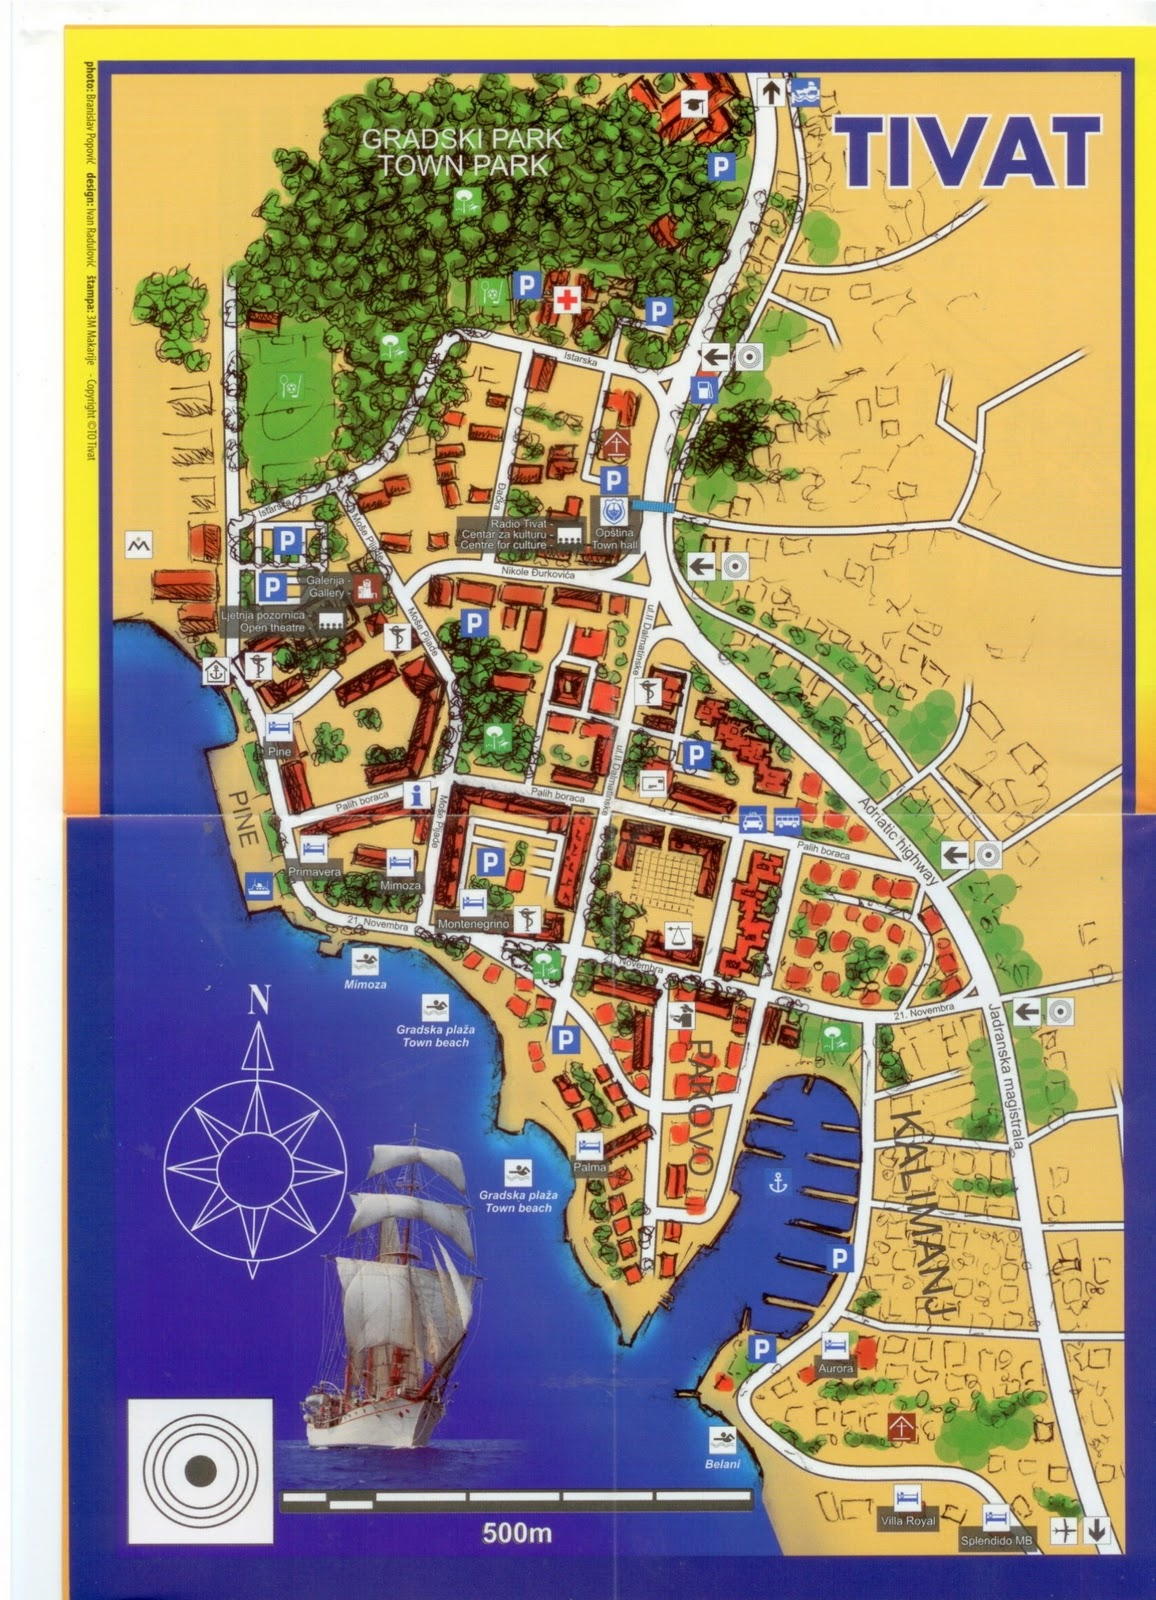 tivat mapa Long term rentals in the Tivat Riviera, Montenegro.: Tivat Maps tivat mapa